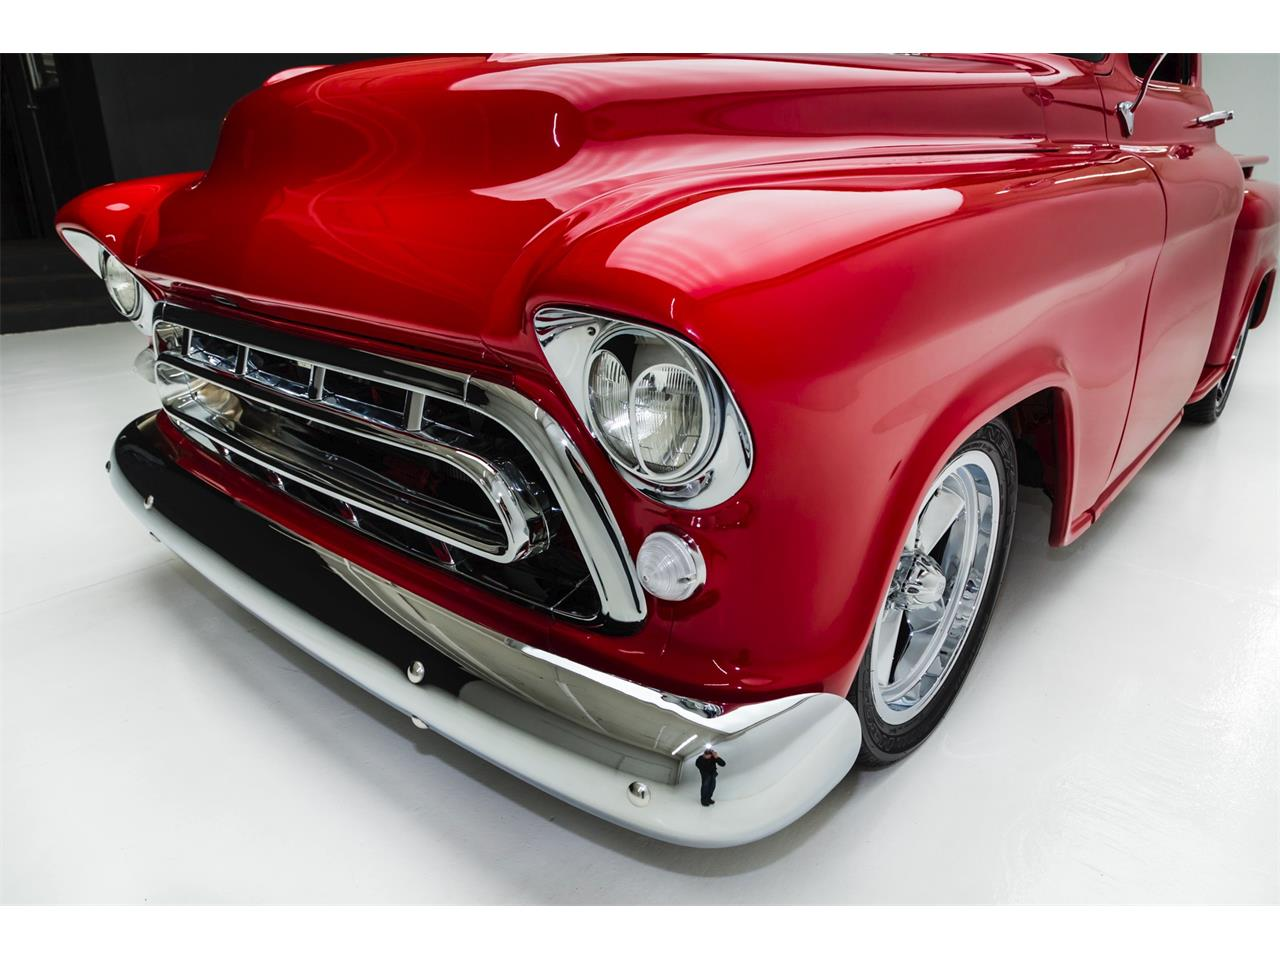 Large Picture of 1957 Chevrolet Pickup - $59,900.00 Offered by American Dream Machines - KM69